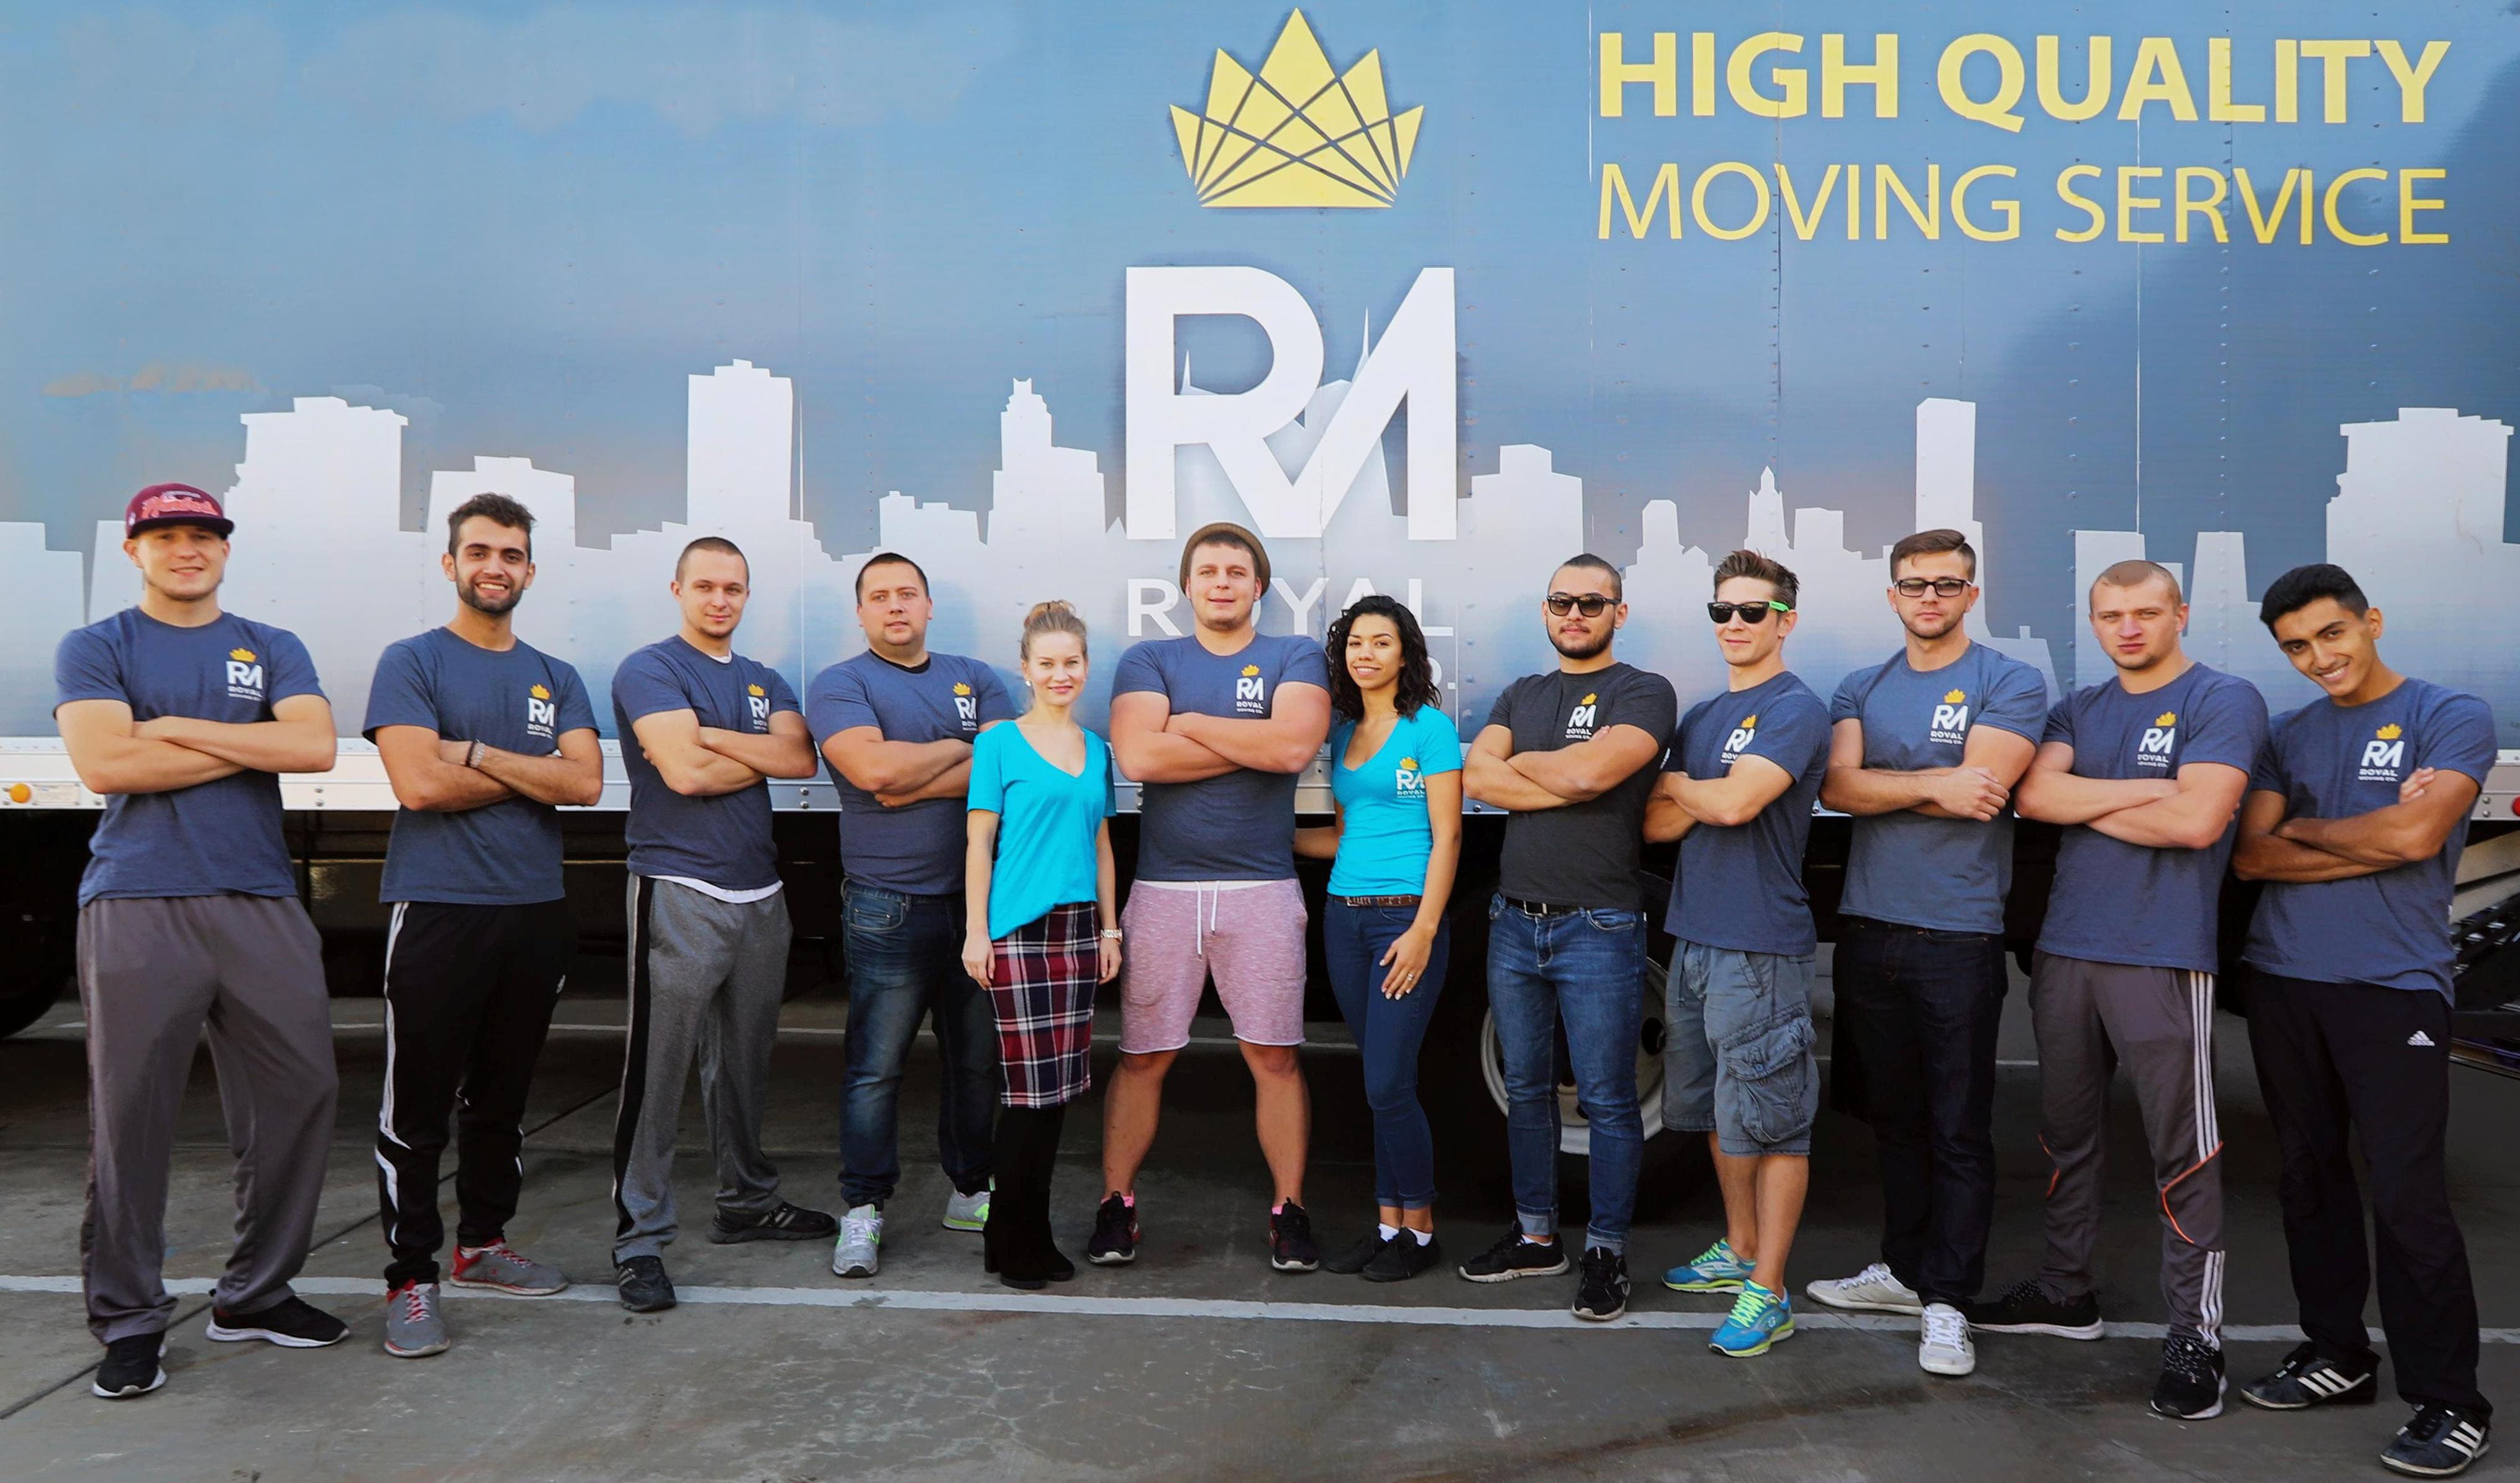 Piano Moves With Royal Moving Company